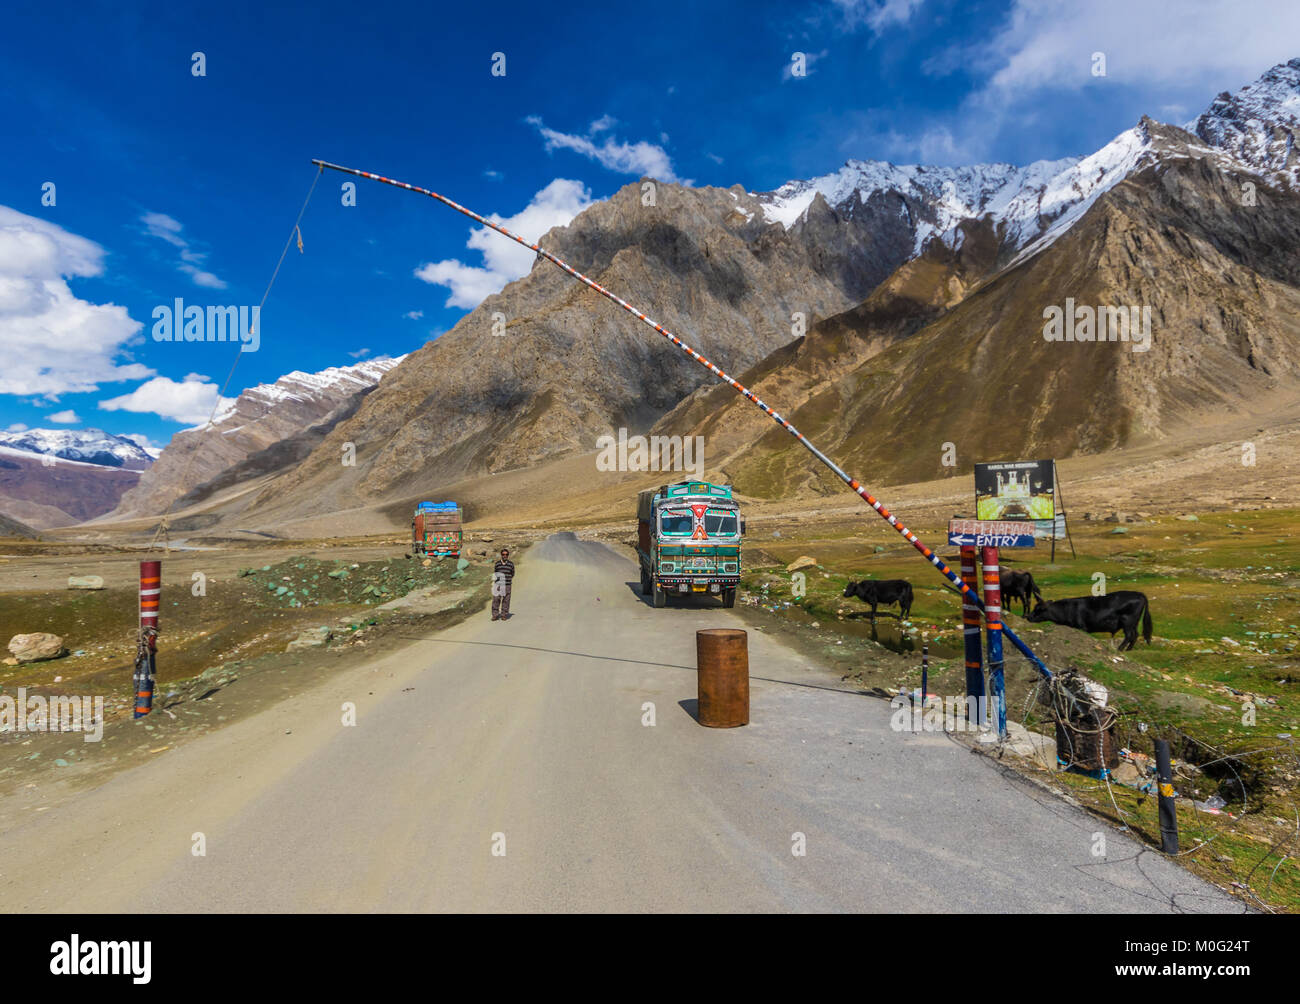 LEH, JAMMU & KASHMIR - INDIA - along the Indus Valley, right at the border with Pakistan and China, between - Stock Image